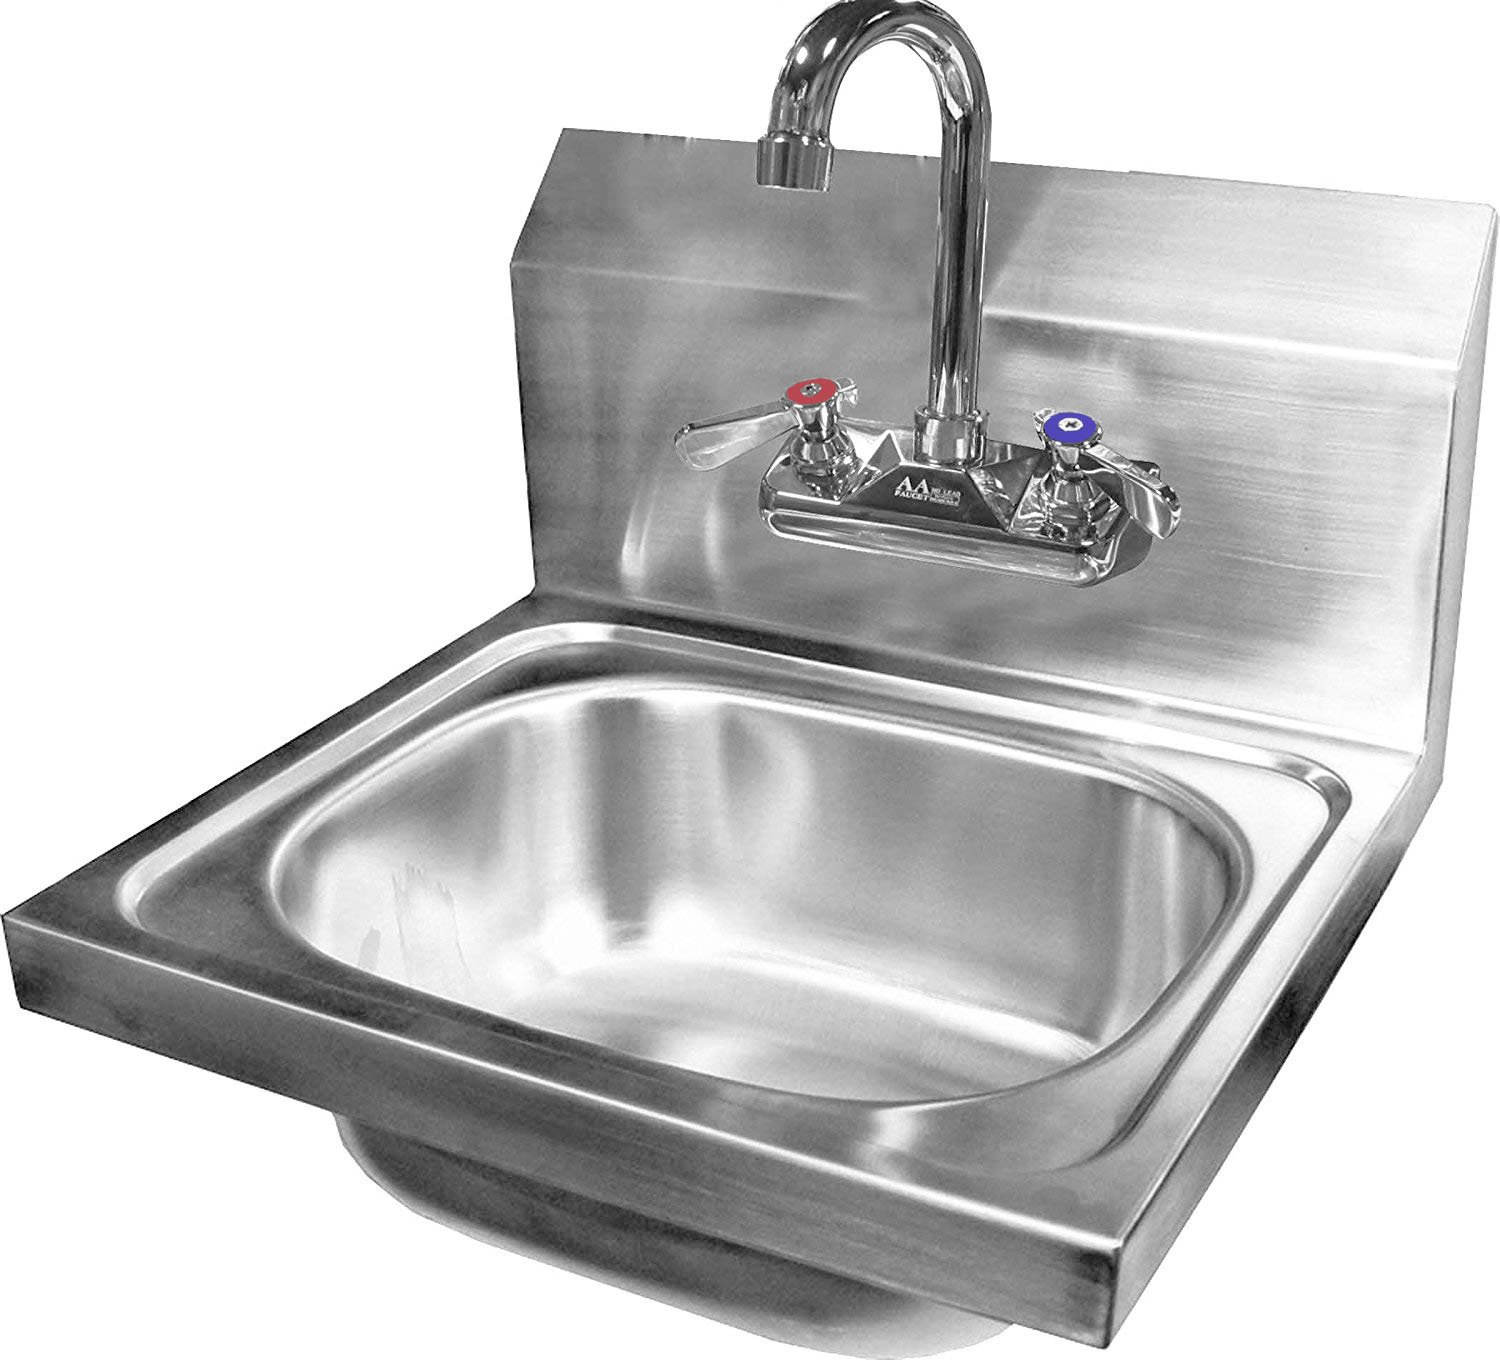 "DuraSteel Stainless Steel Hand Sink with 17""W x 20""L x 15""H Sink Dimension 